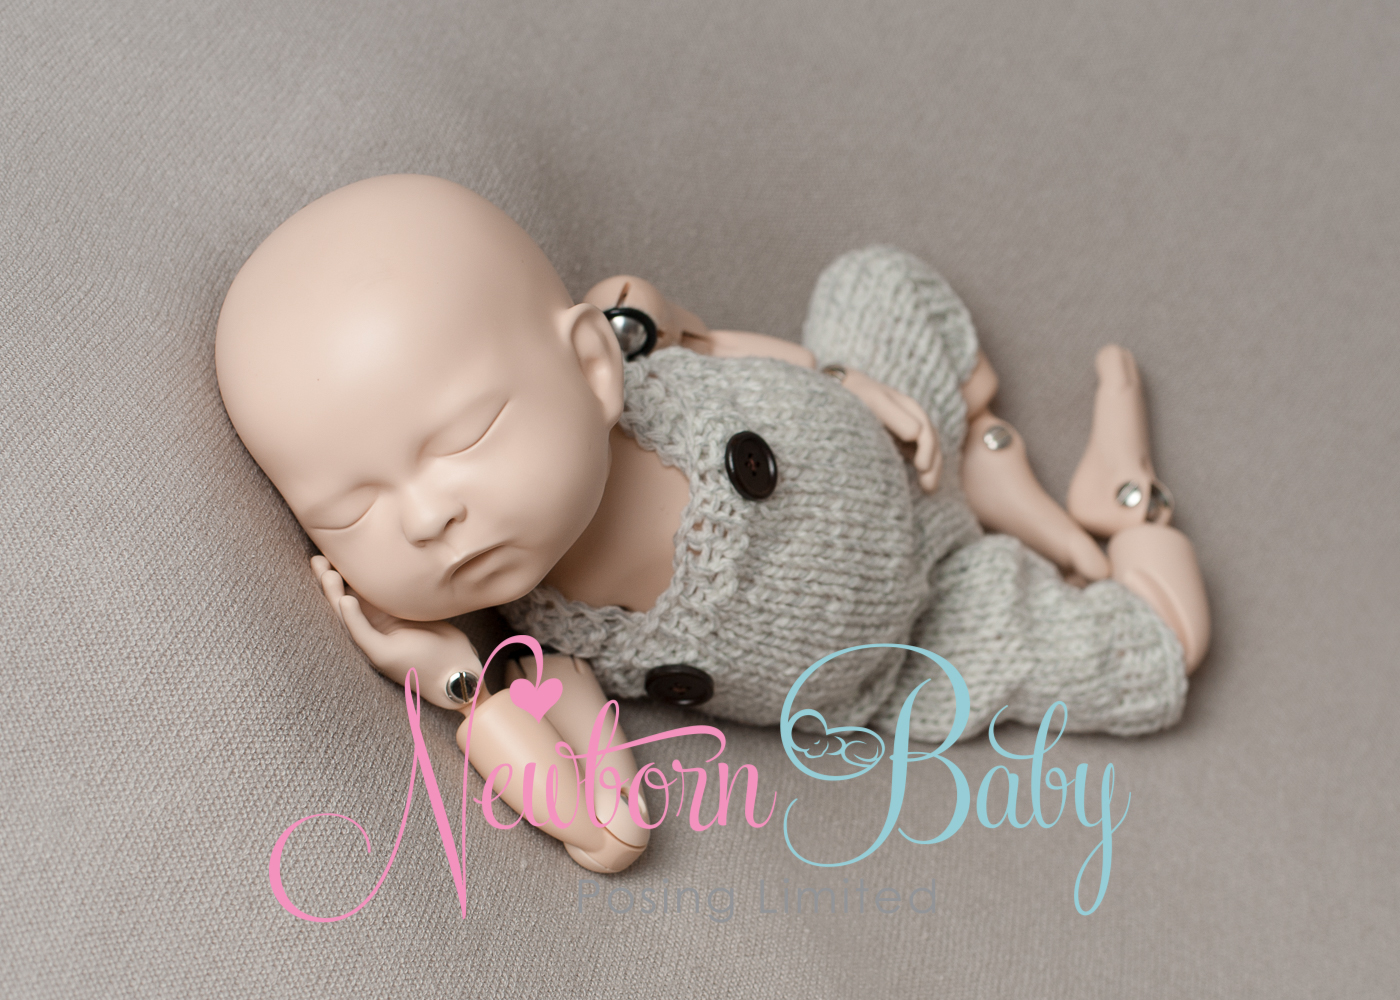 1 383 171 baby stock images are available royalty-free